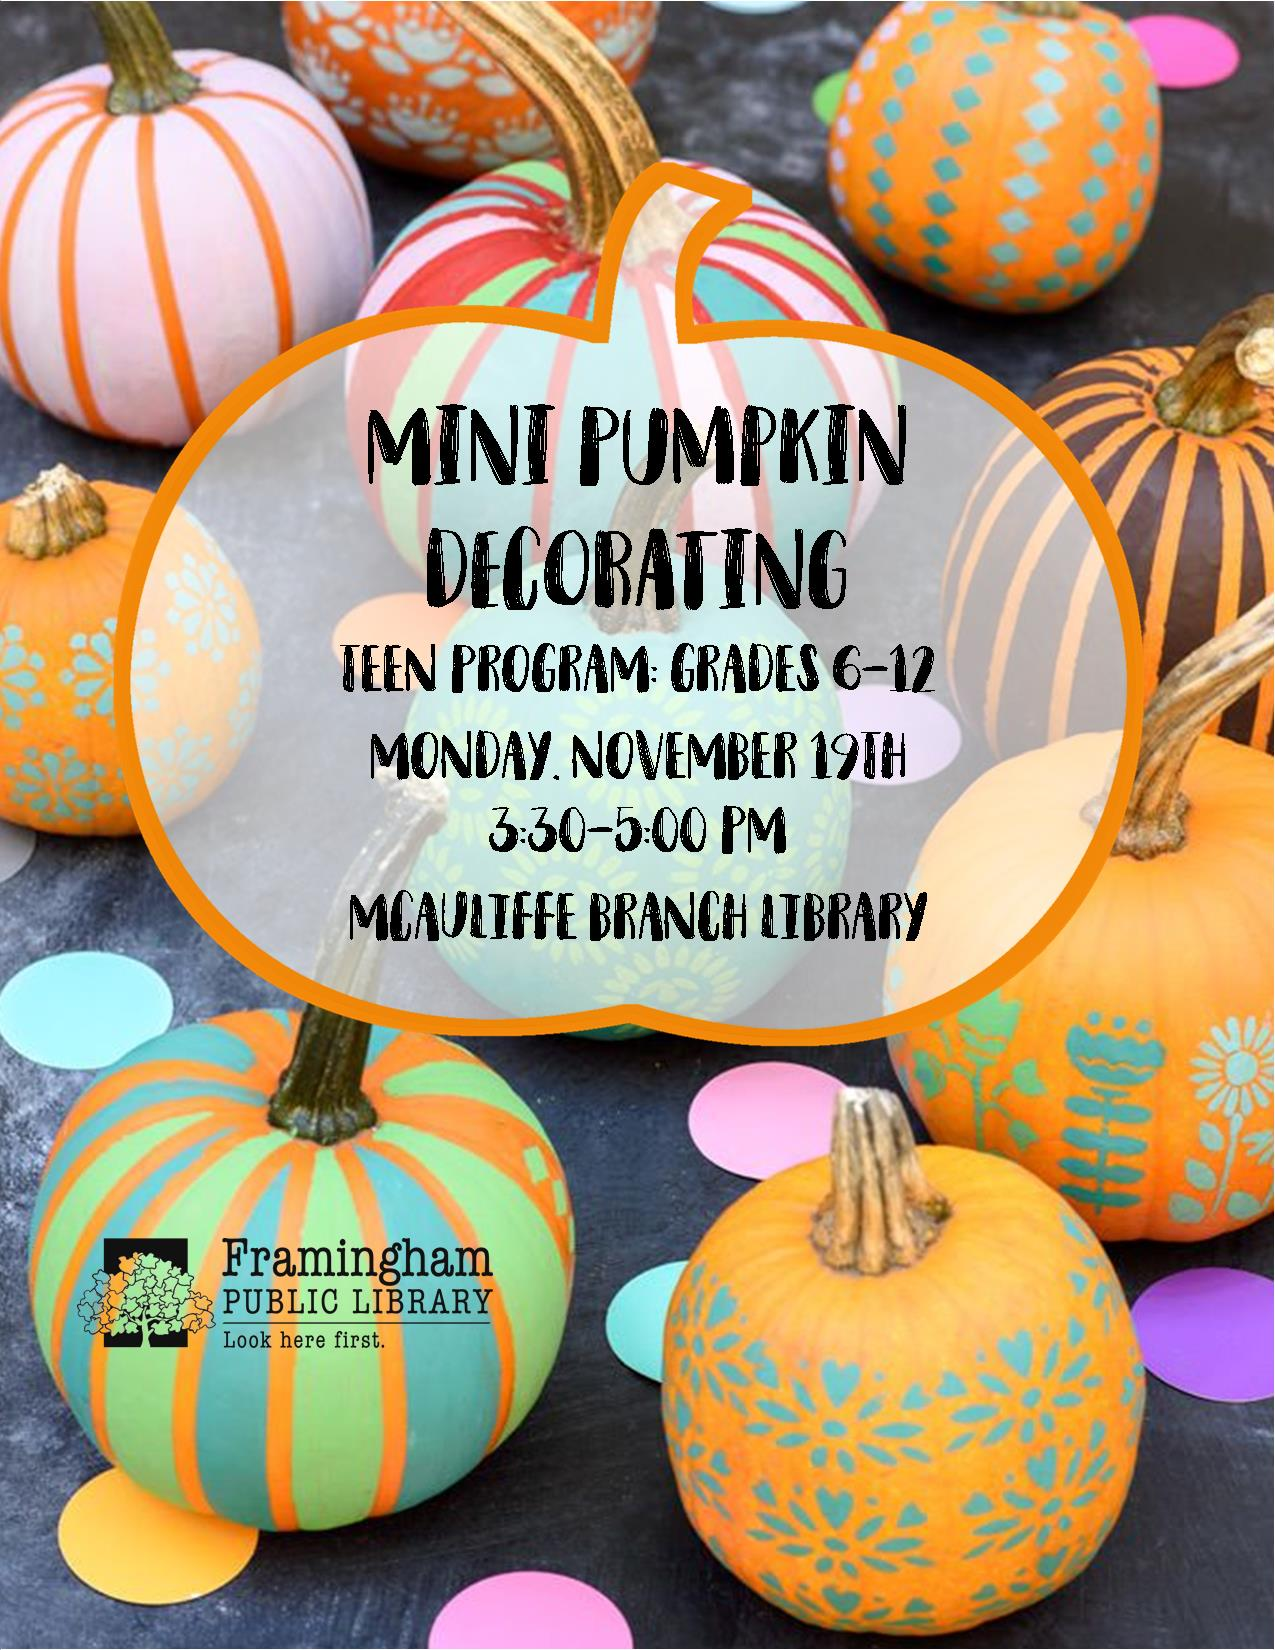 Mini Pumpkin Decorating thumbnail Photo